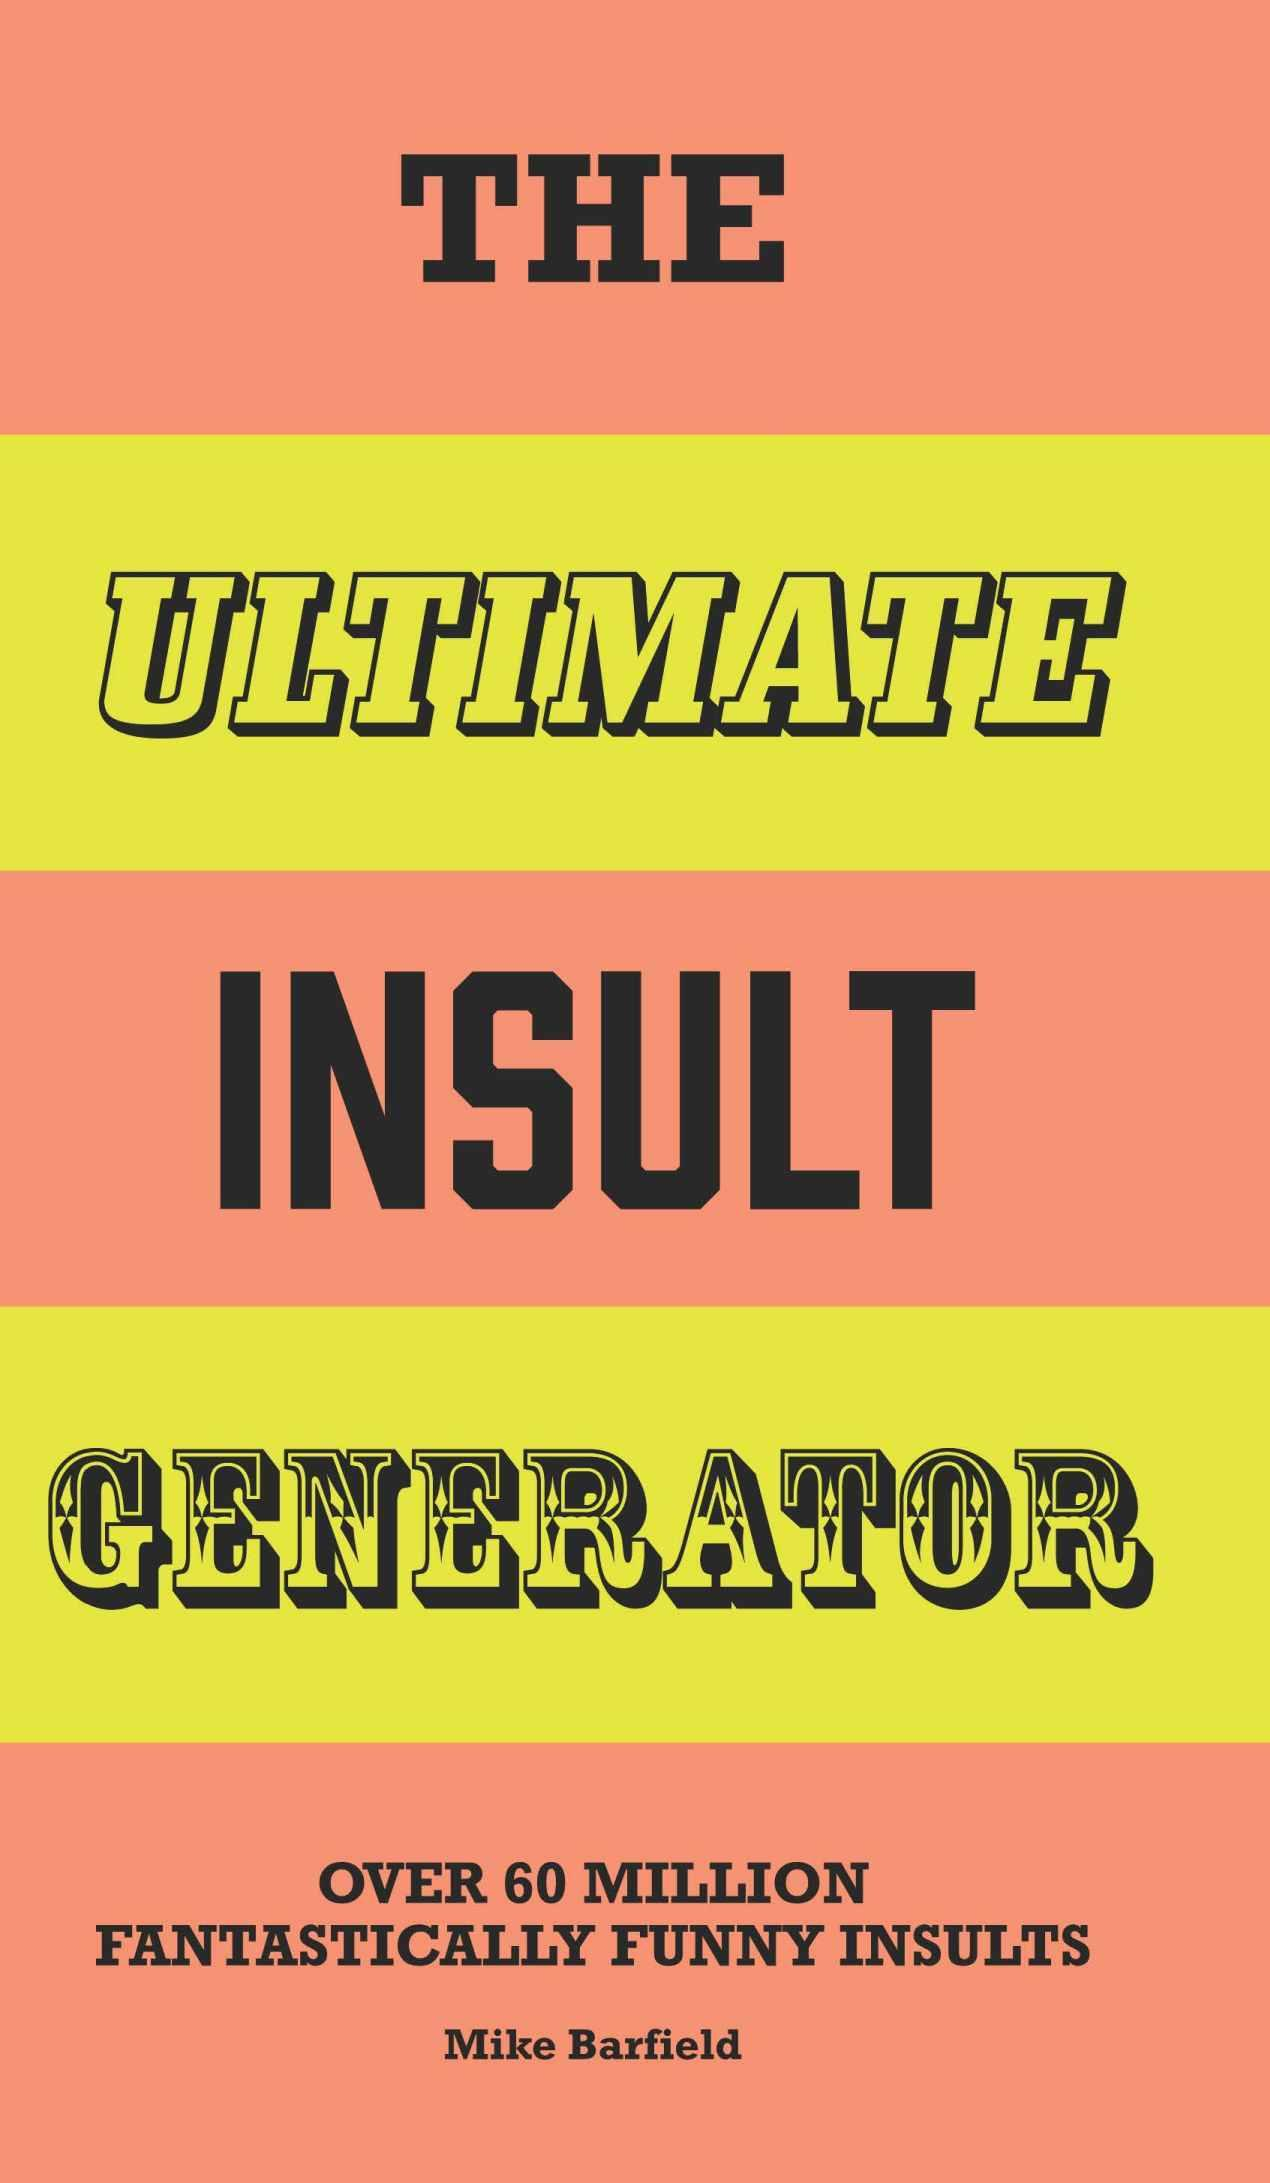 Ultimate Insult Generator - Over 60 Million Hilarious Zingers and Stingers